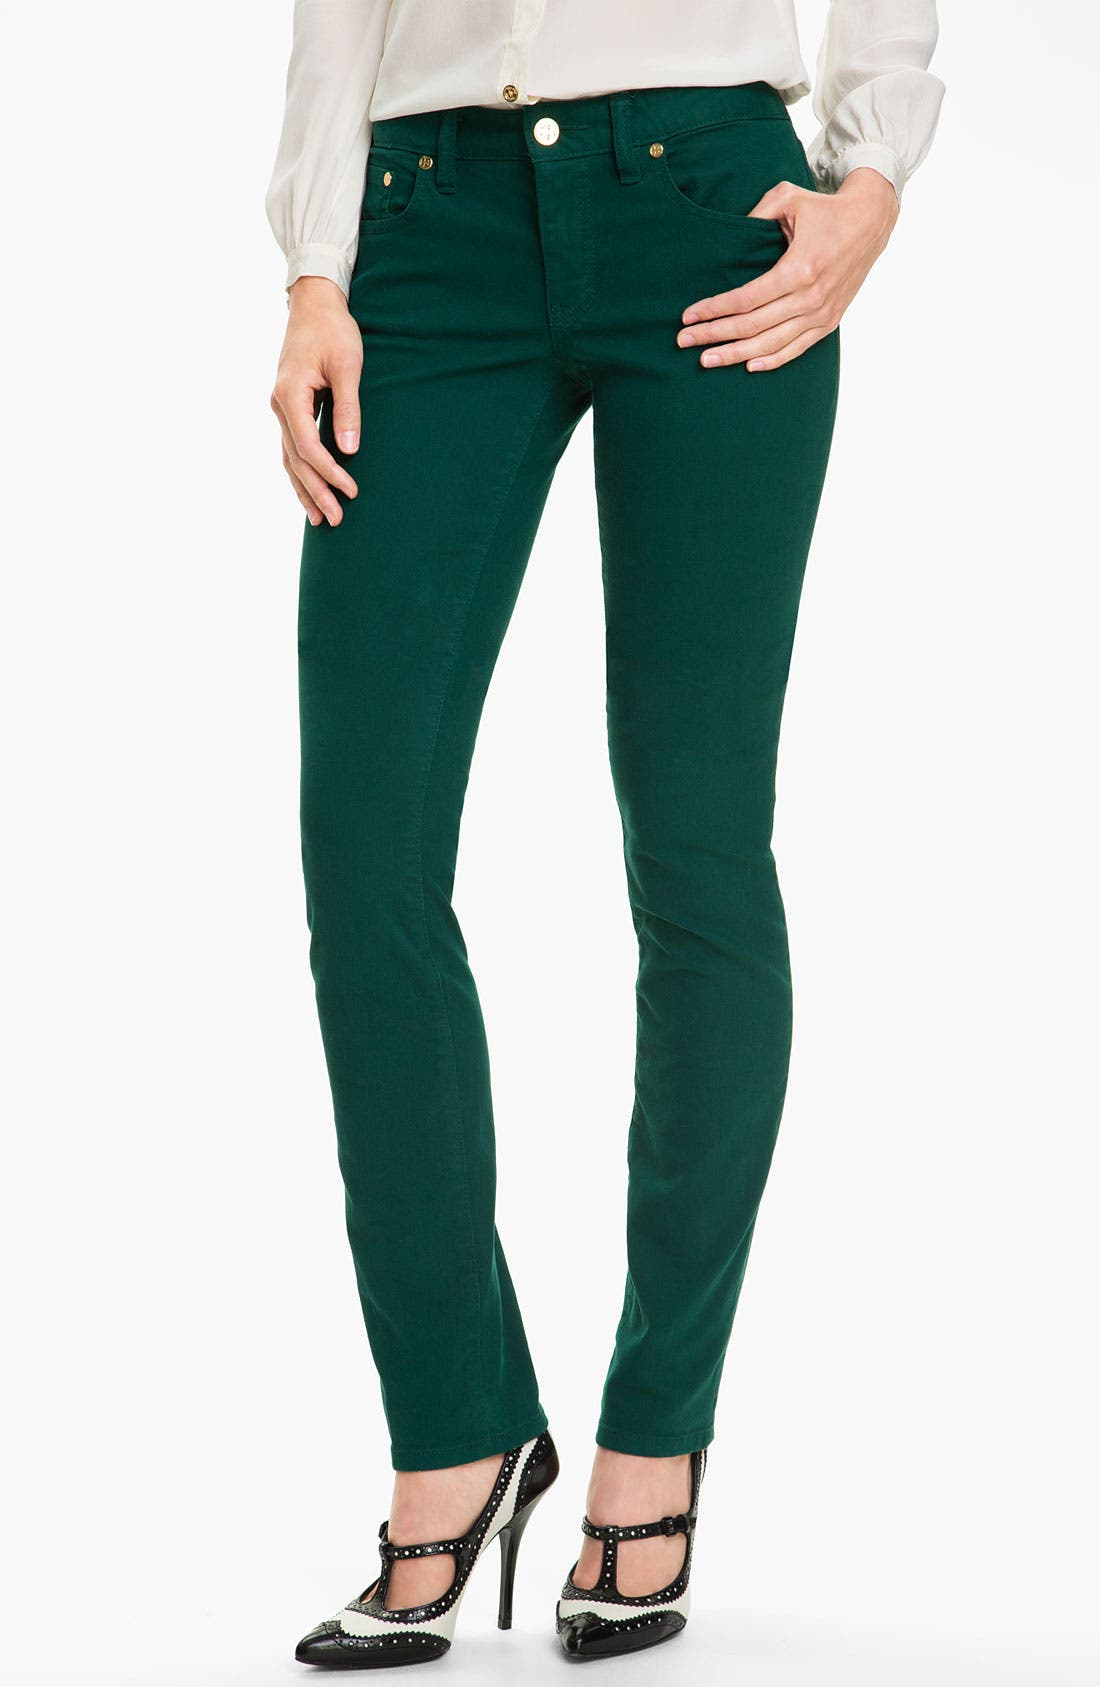 Main Image - Tory Burch 'Ivy' Skinny Stretch Jeans